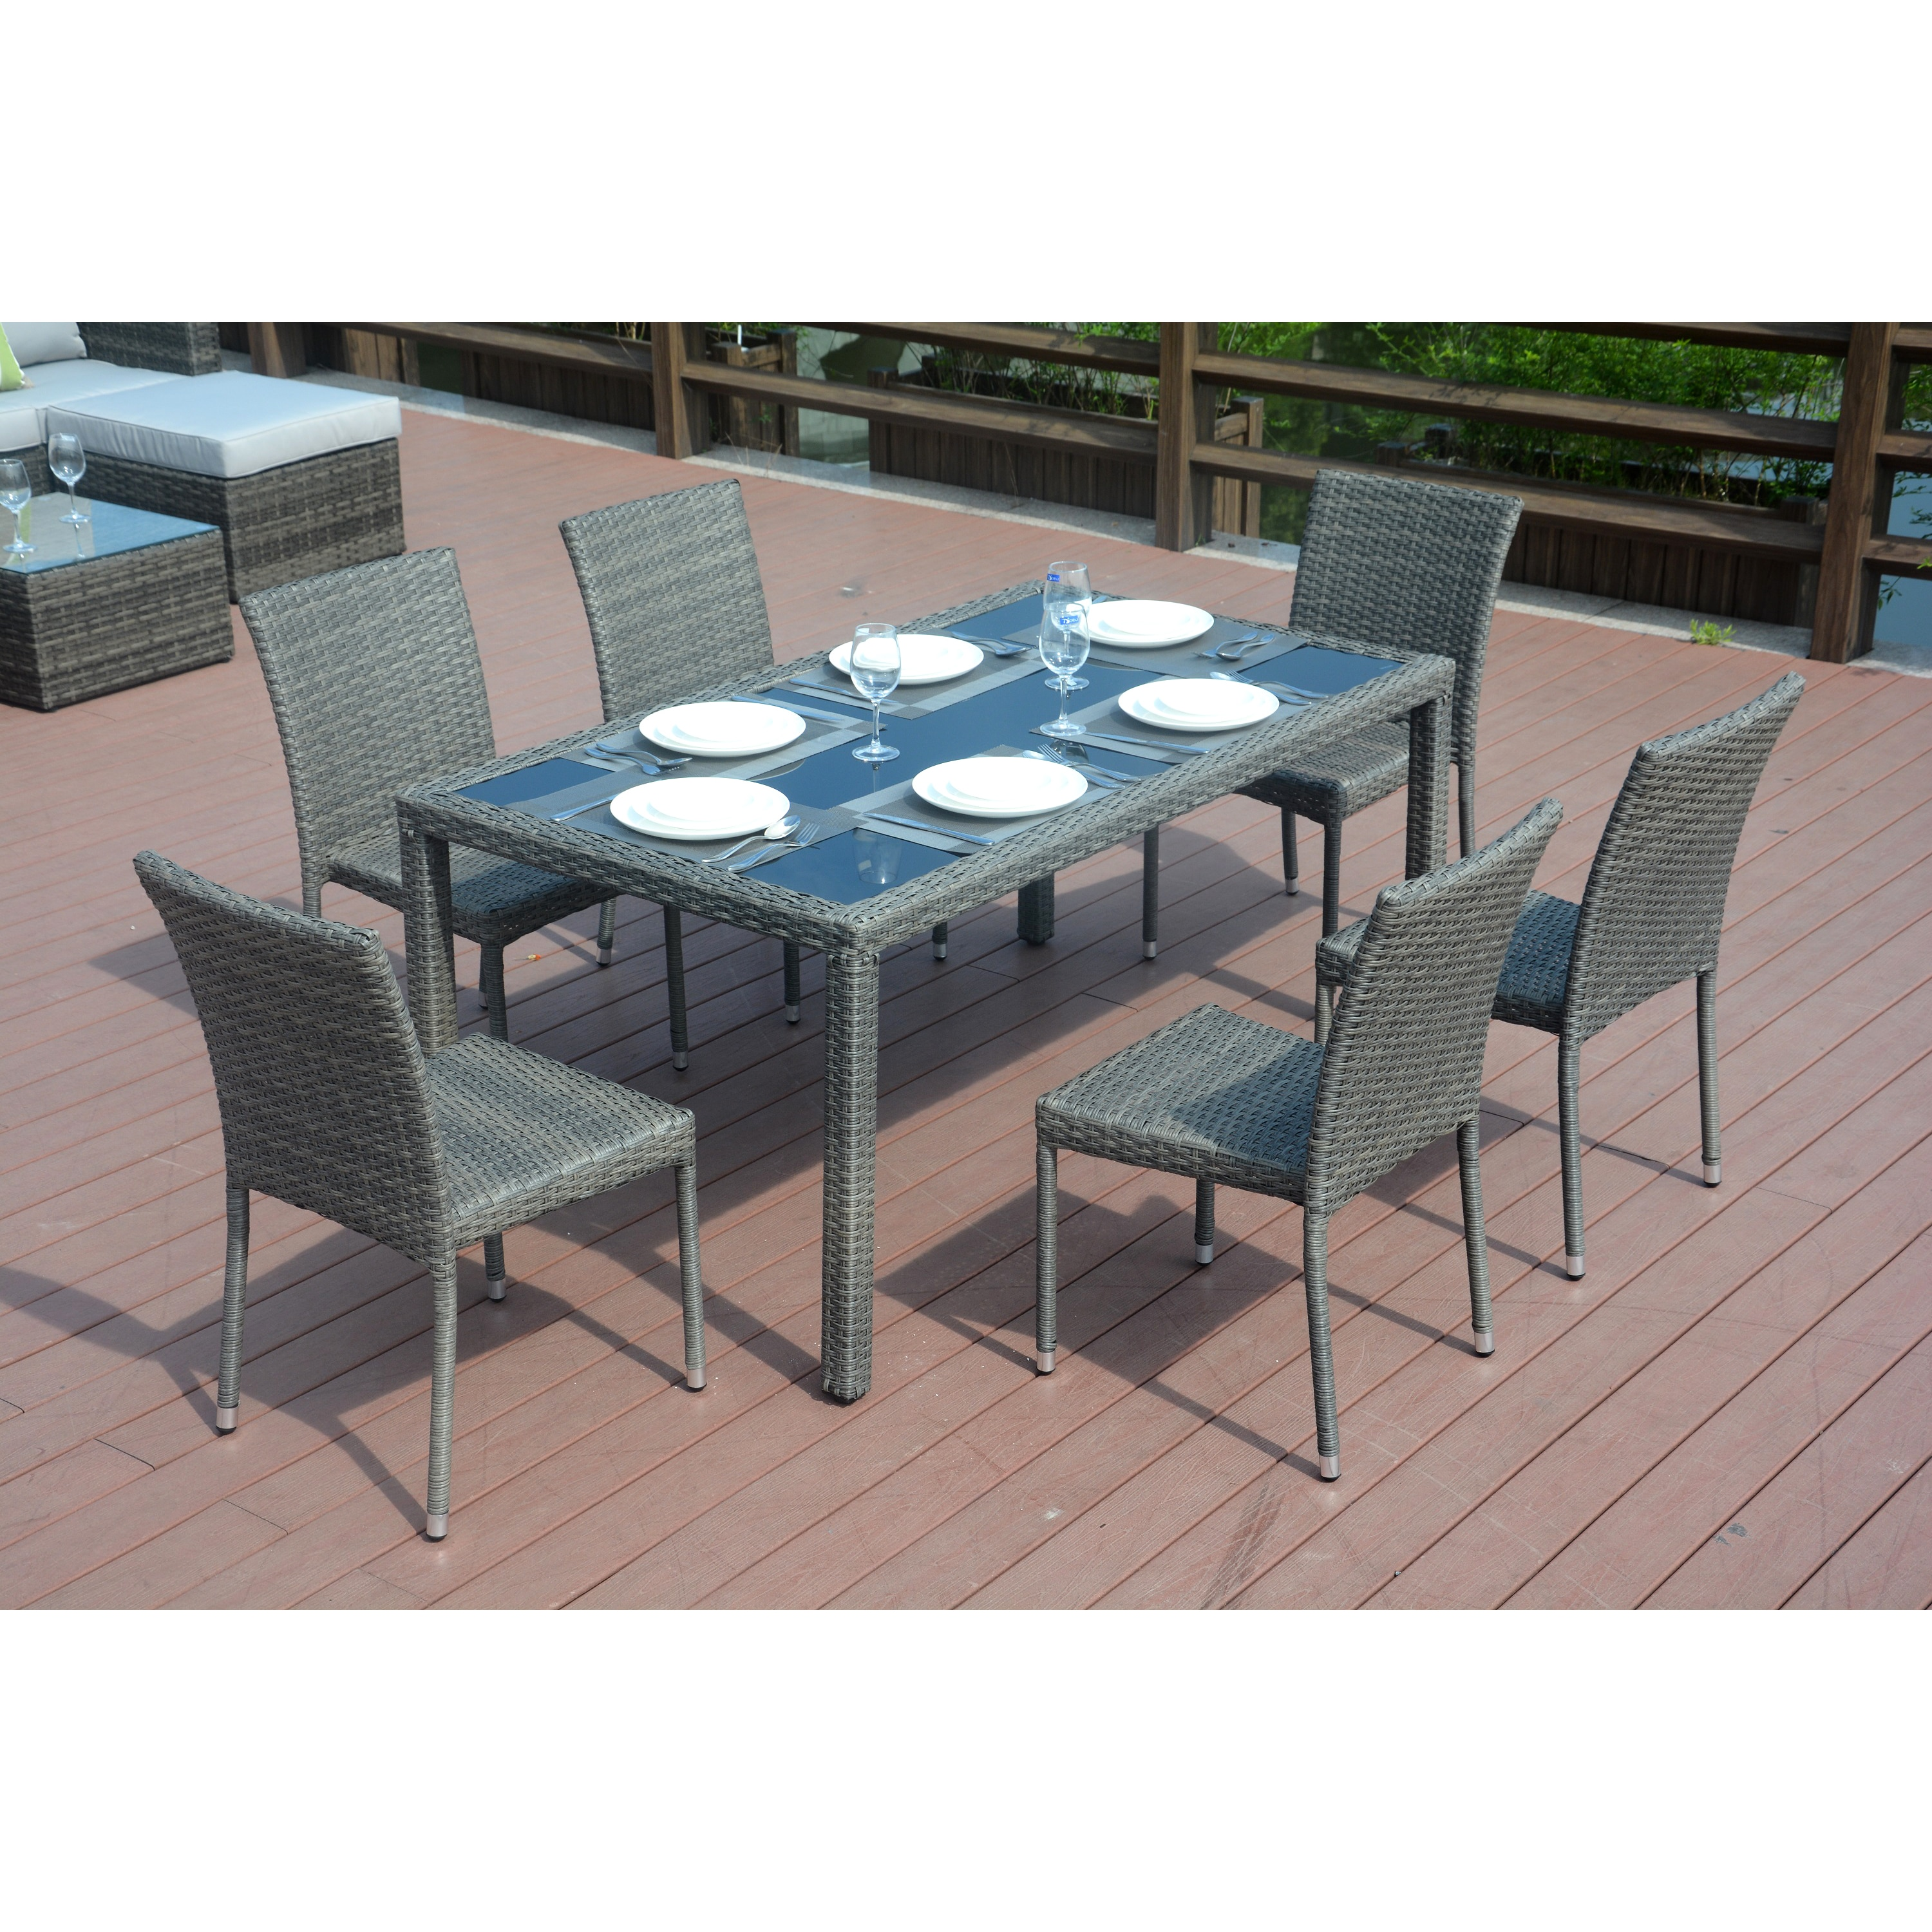 Shop Emily Grey Wicker 7 Piece Dining Set With 8 Foot Cantilever Umbrella  By Direct Wicker   Free Shipping Today   Overstock.com   16846559